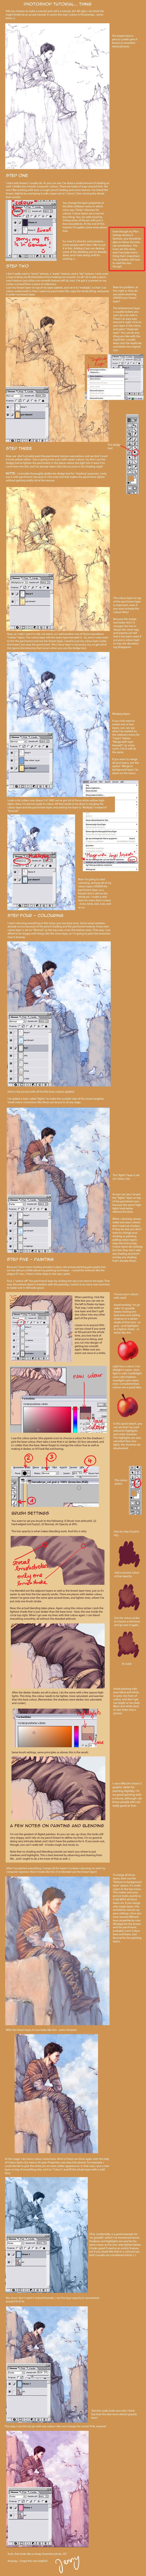 Colouring in Photoshop by Gold-Seven on deviantART... Wow.  This is so helpfully confusing.  ;)